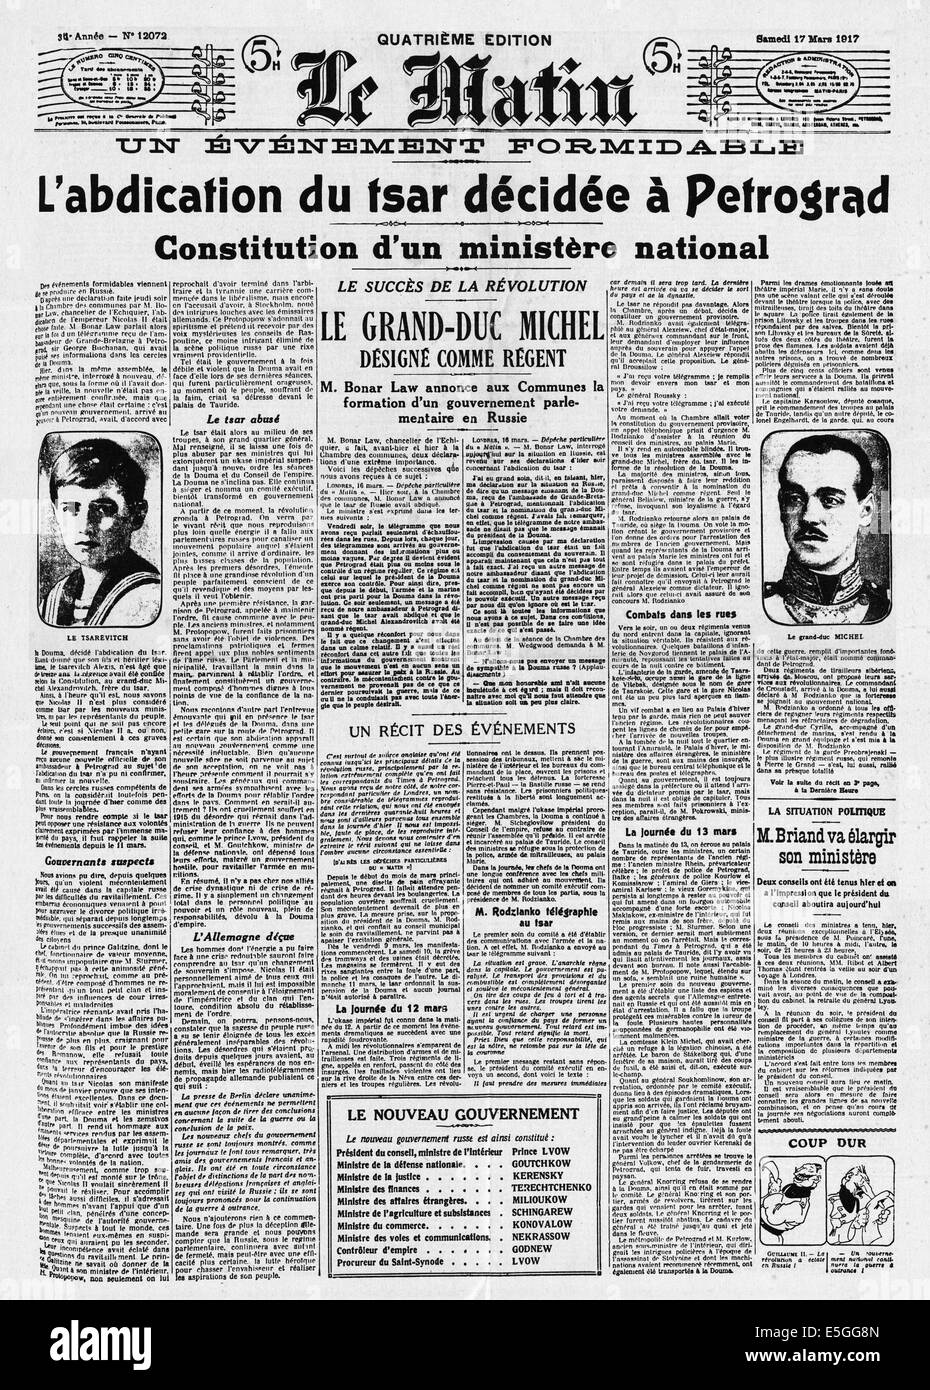 1917 le matin france front page reporting the abdication of czar